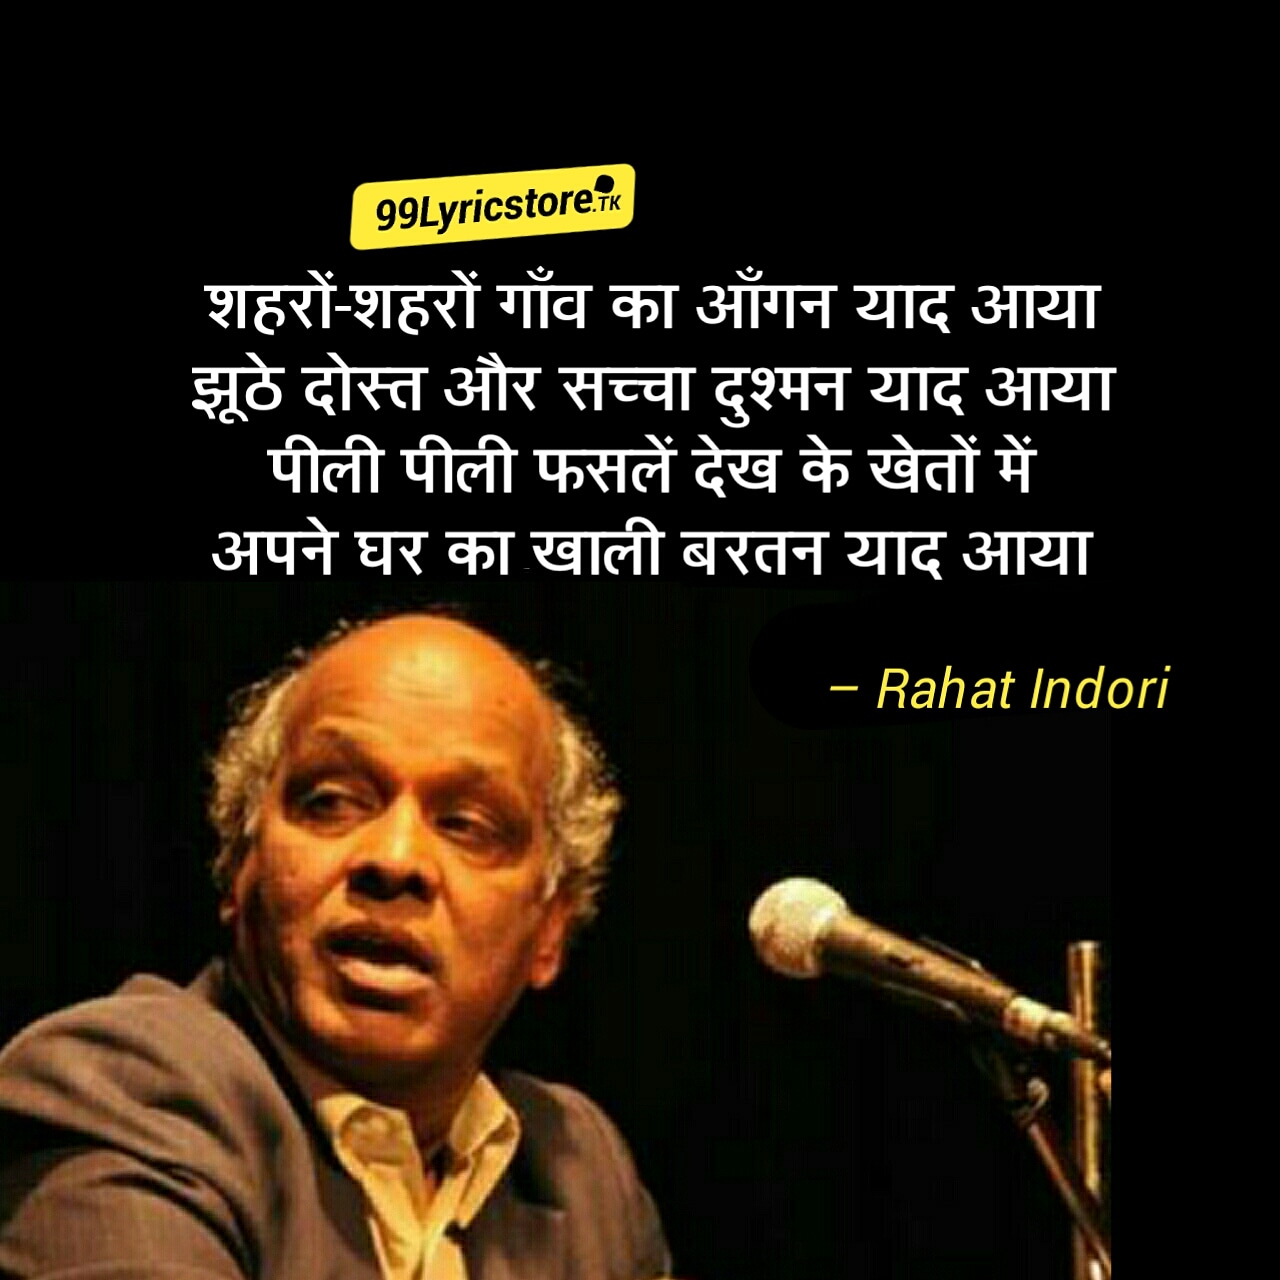 Shaharon-Shaharon Gaanv Ka Aangan Yaad Aaya' written and performed by Rahat Indori. This poetry is best Ghazal and Shayari of Rahat Indori.